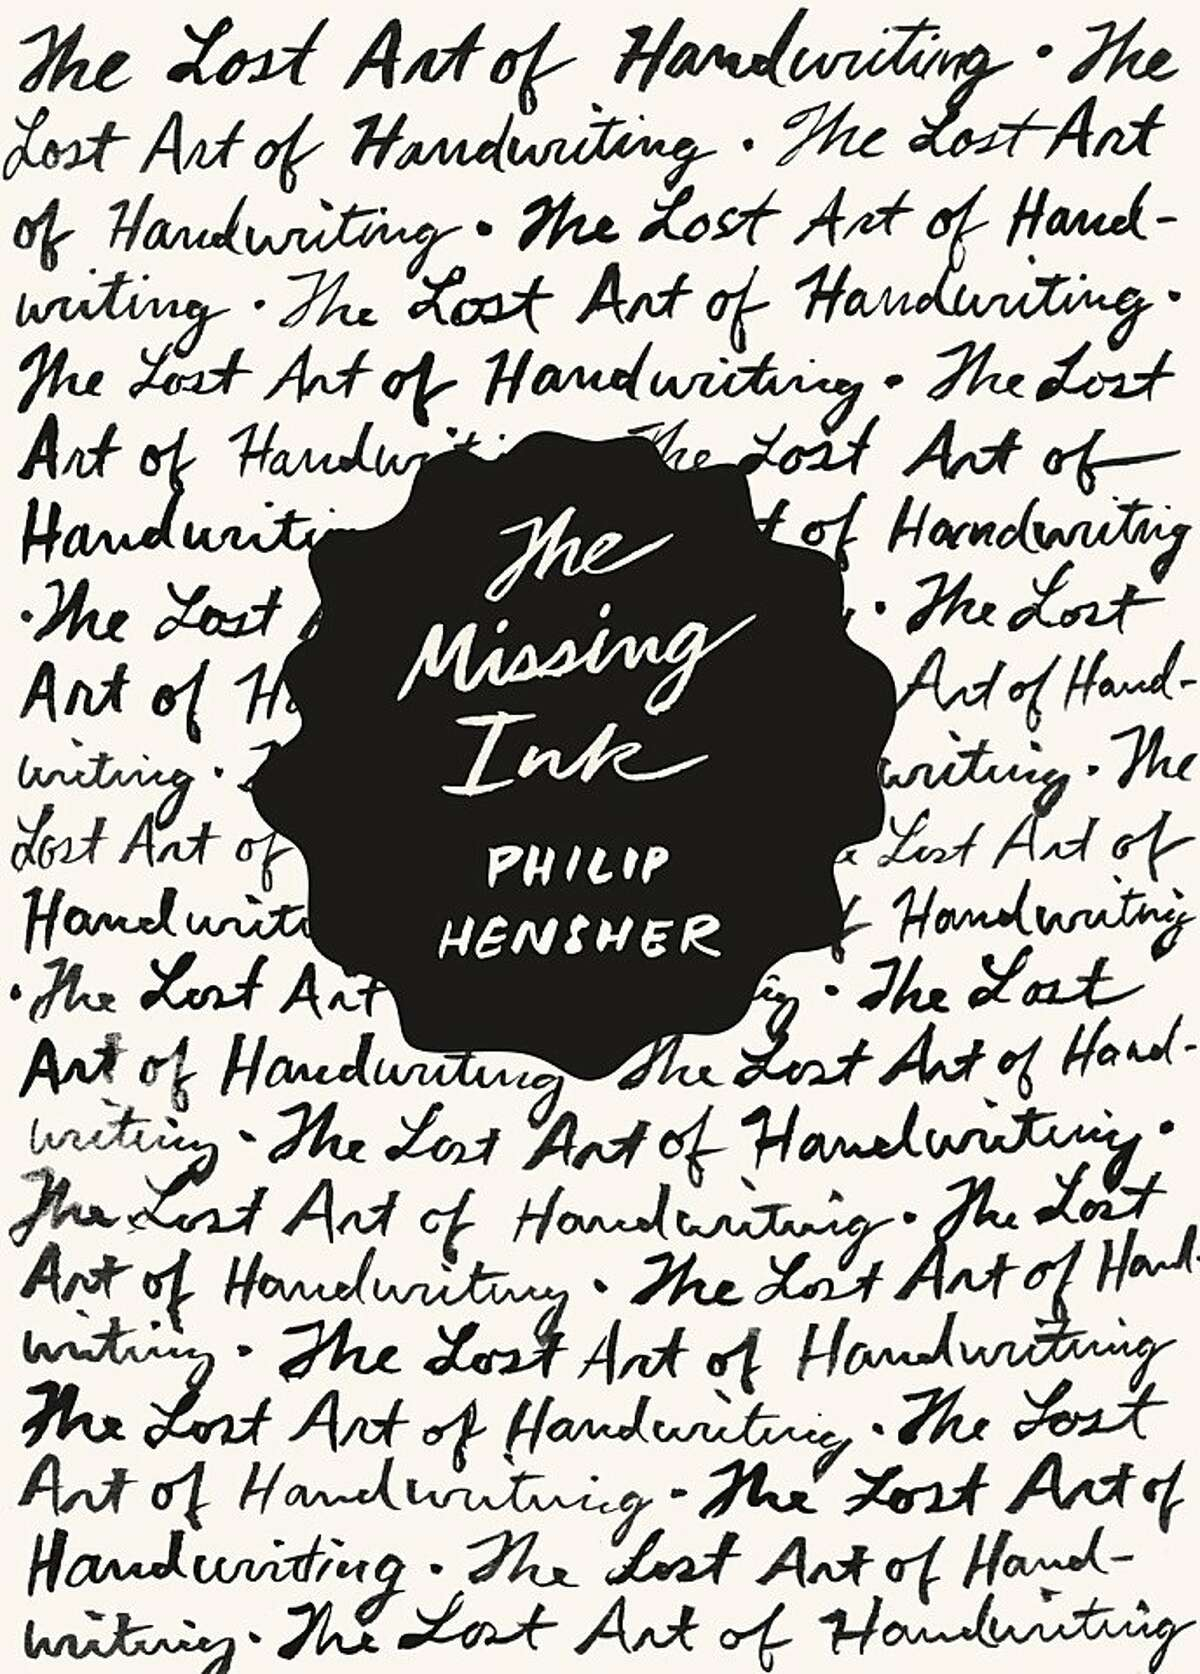 The Missing Ink, by Philip Hensher